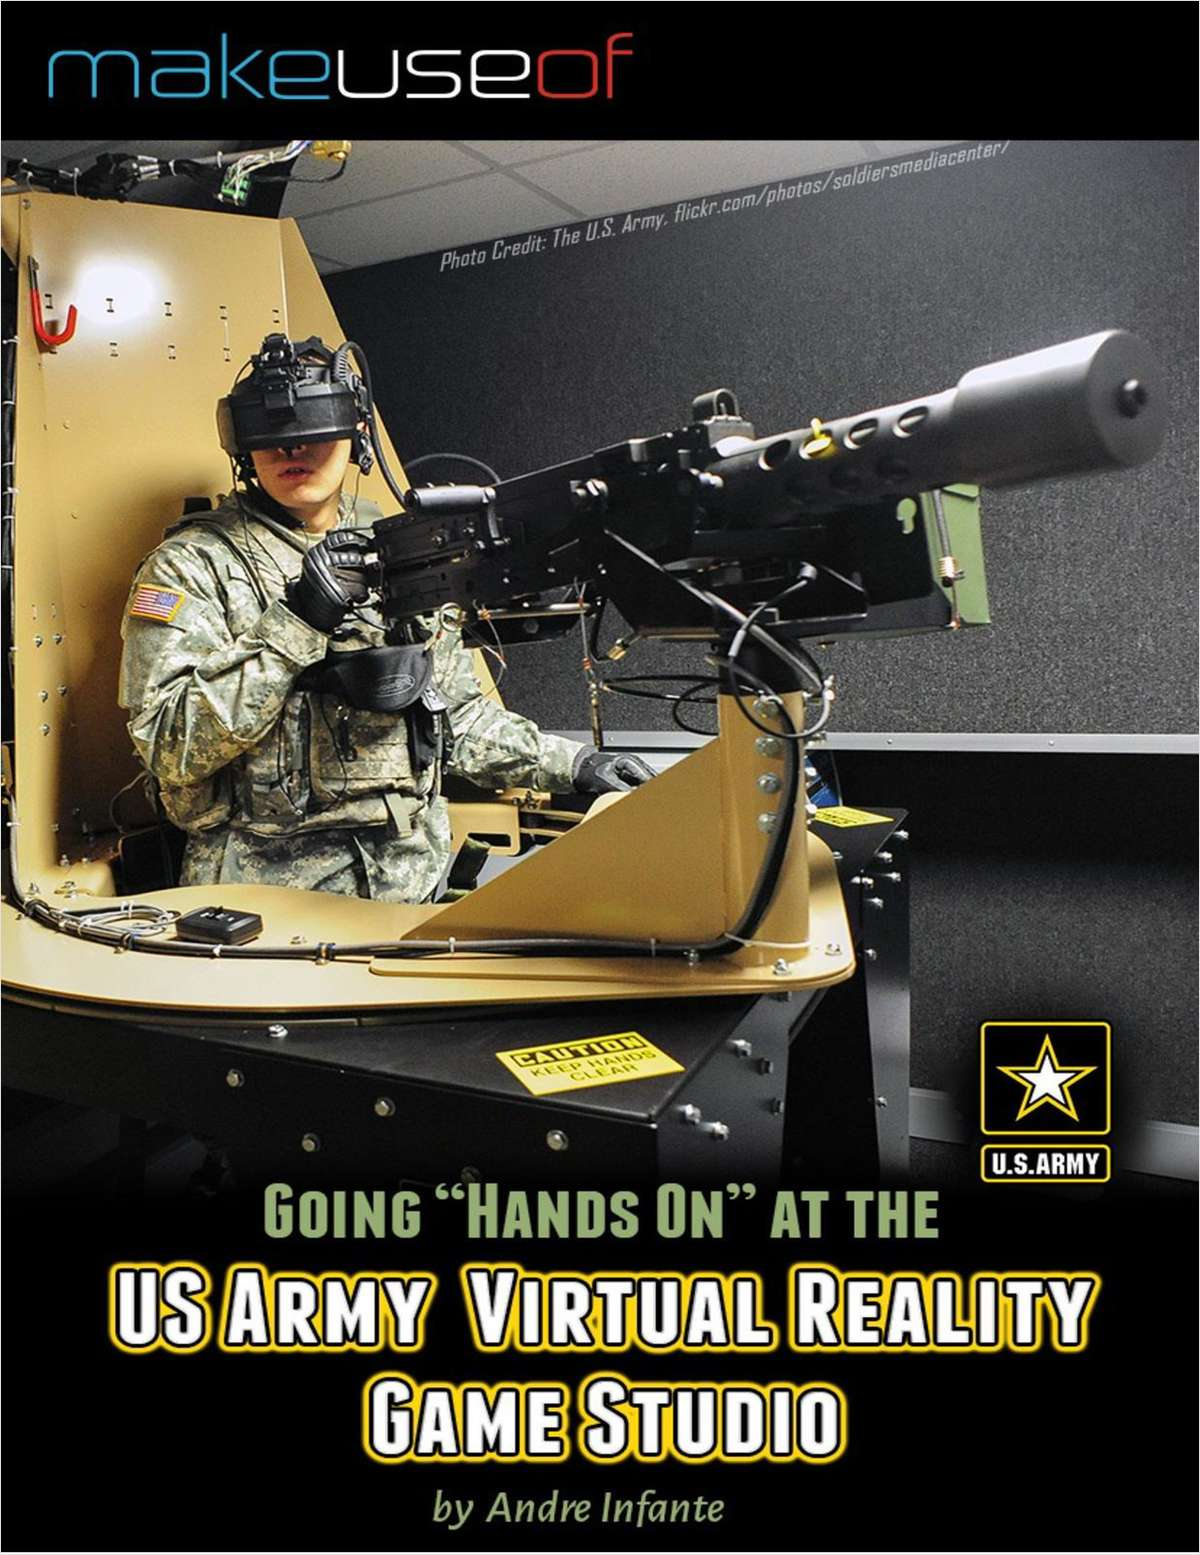 Going 'Hands On' At the US Army Virtual Reality Game Studio